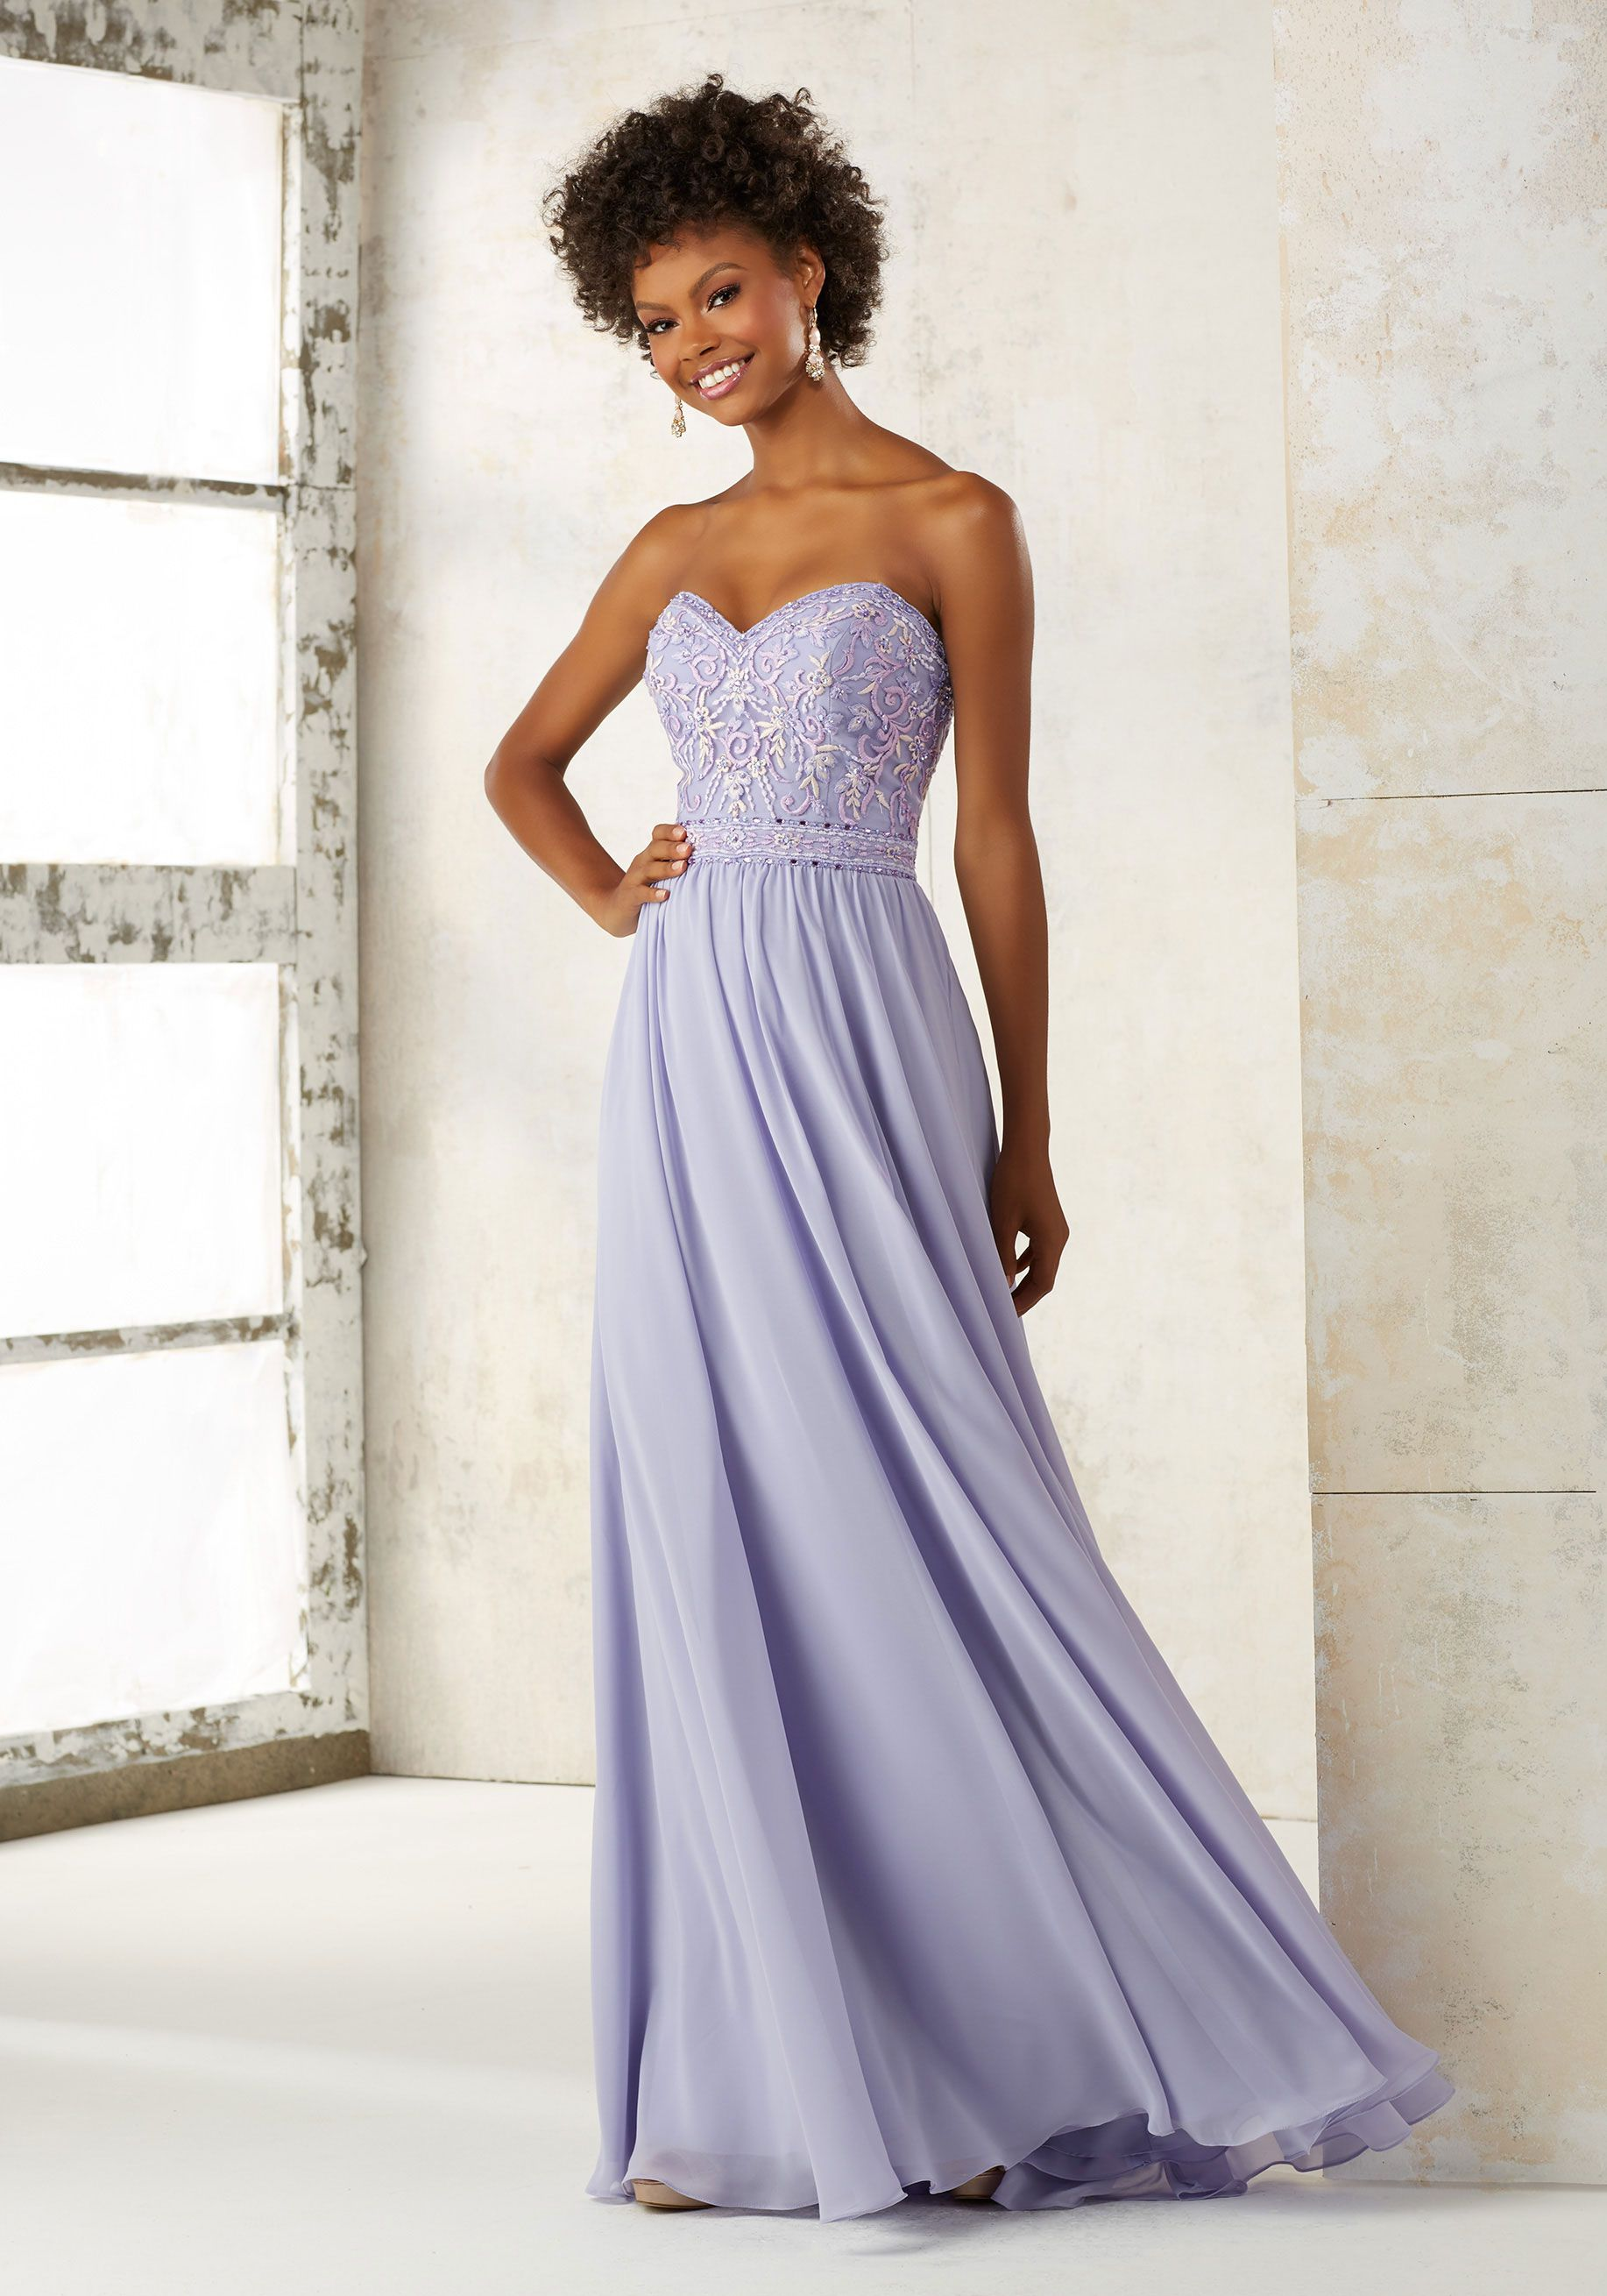 Morilee by Madeline Gardner Bridesmaids Style 21501 | Bridesmaids Dress Featuring a Fitted Strapless, Sweetheart Bodice Accented with Intricate Embroidery and Beading. The Flowy Chiffon Skirt Completes the Look. Zipper Back